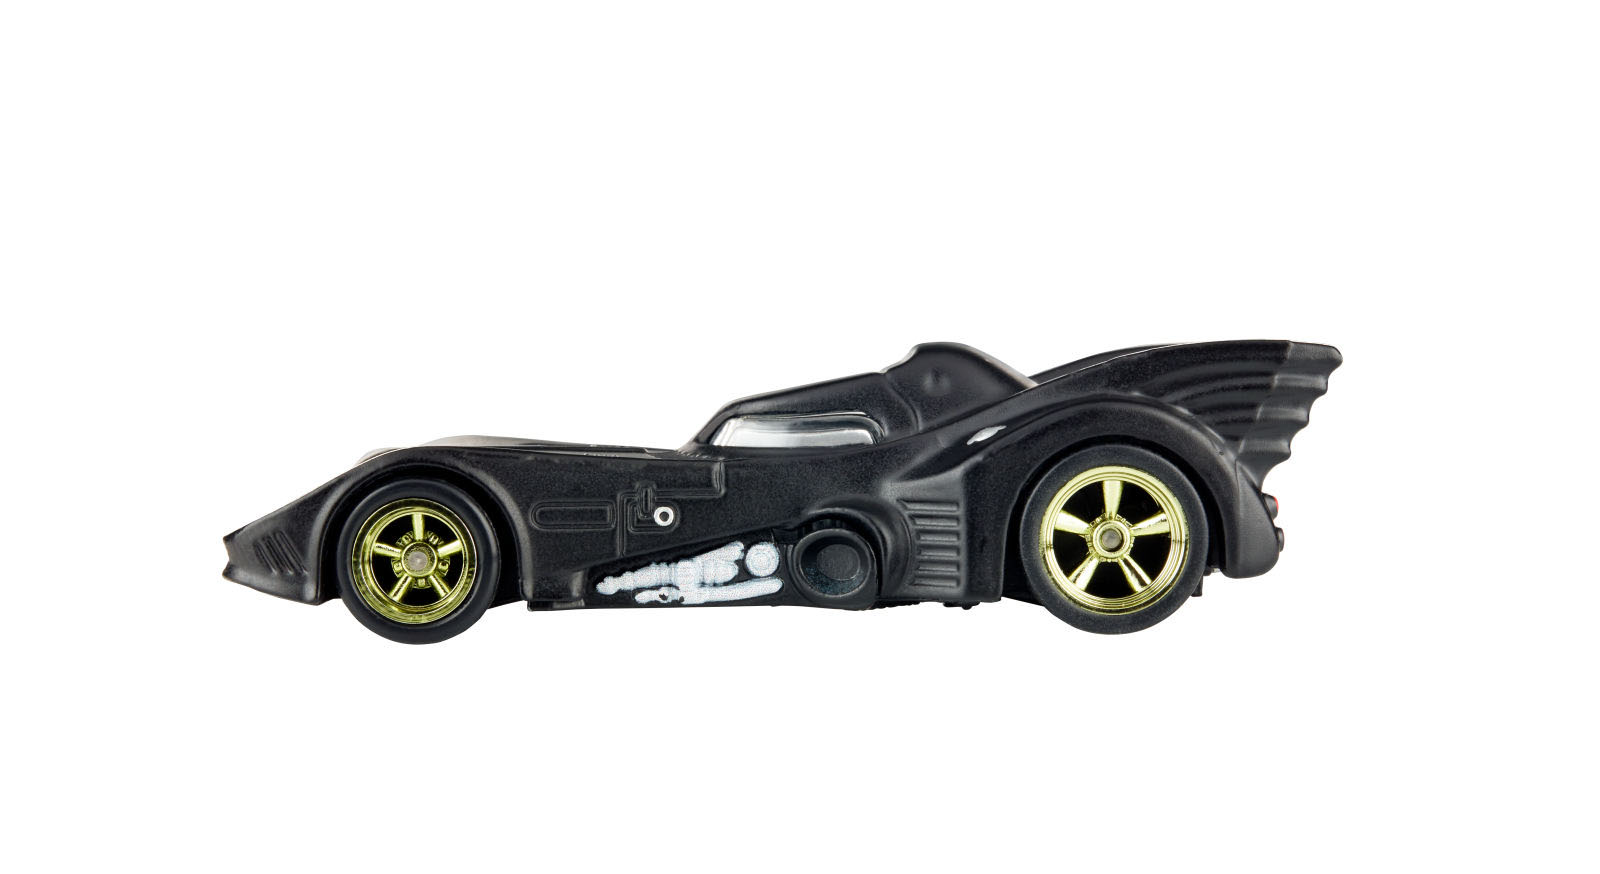 SDCC 2019 Exclusive Batman Figures and Hot Wheels from Mattel - The